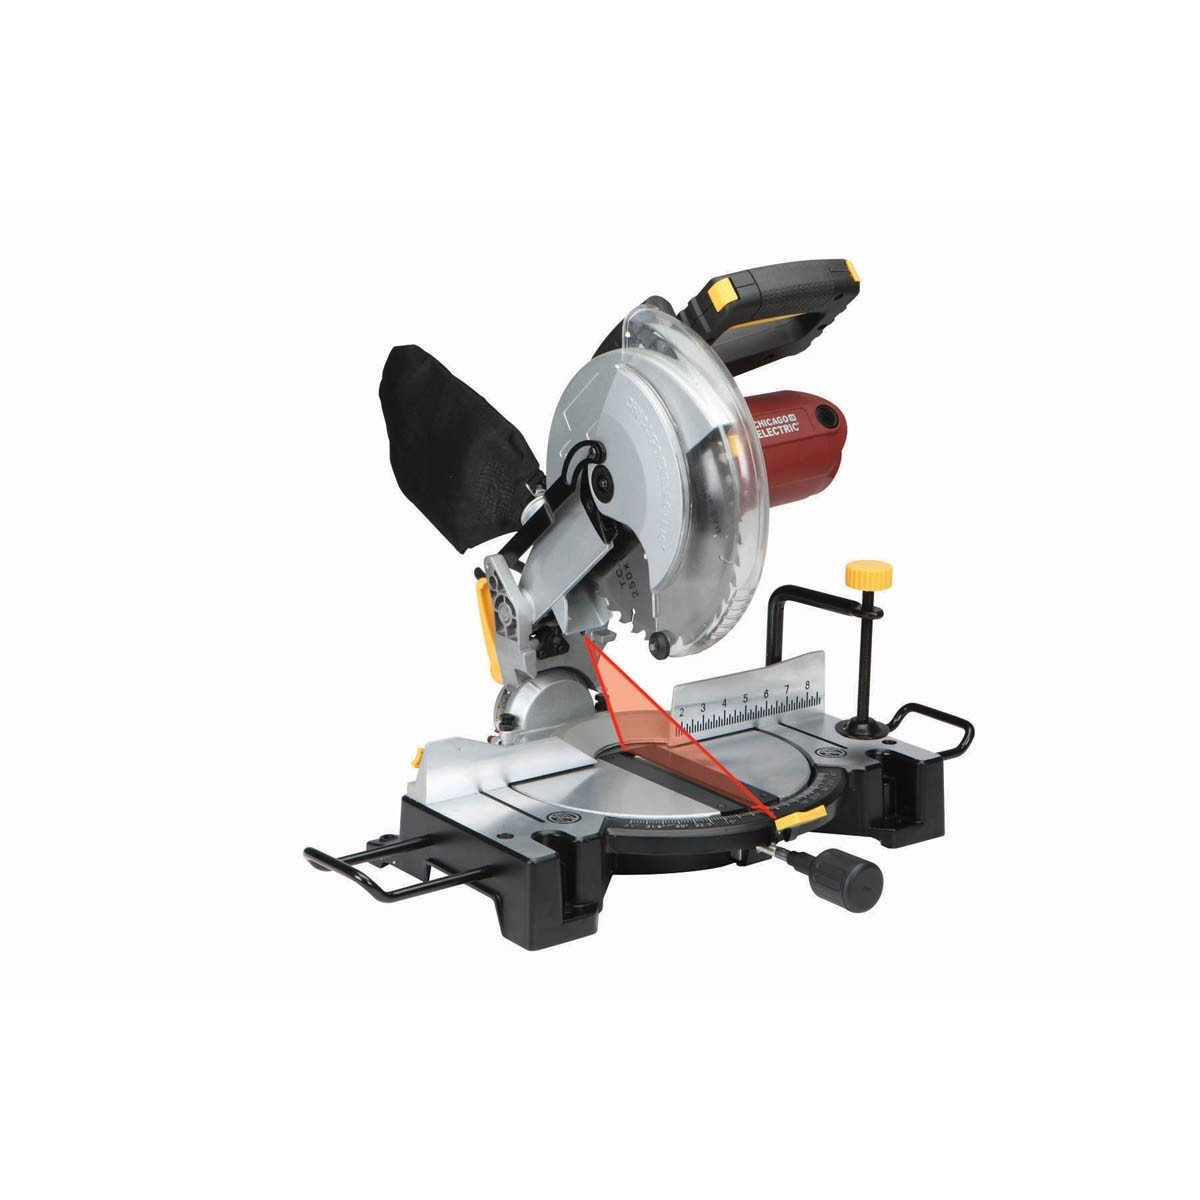 10 Inch Compound Miter Saw with Laser Guide System Bevel 45 deg. left right by